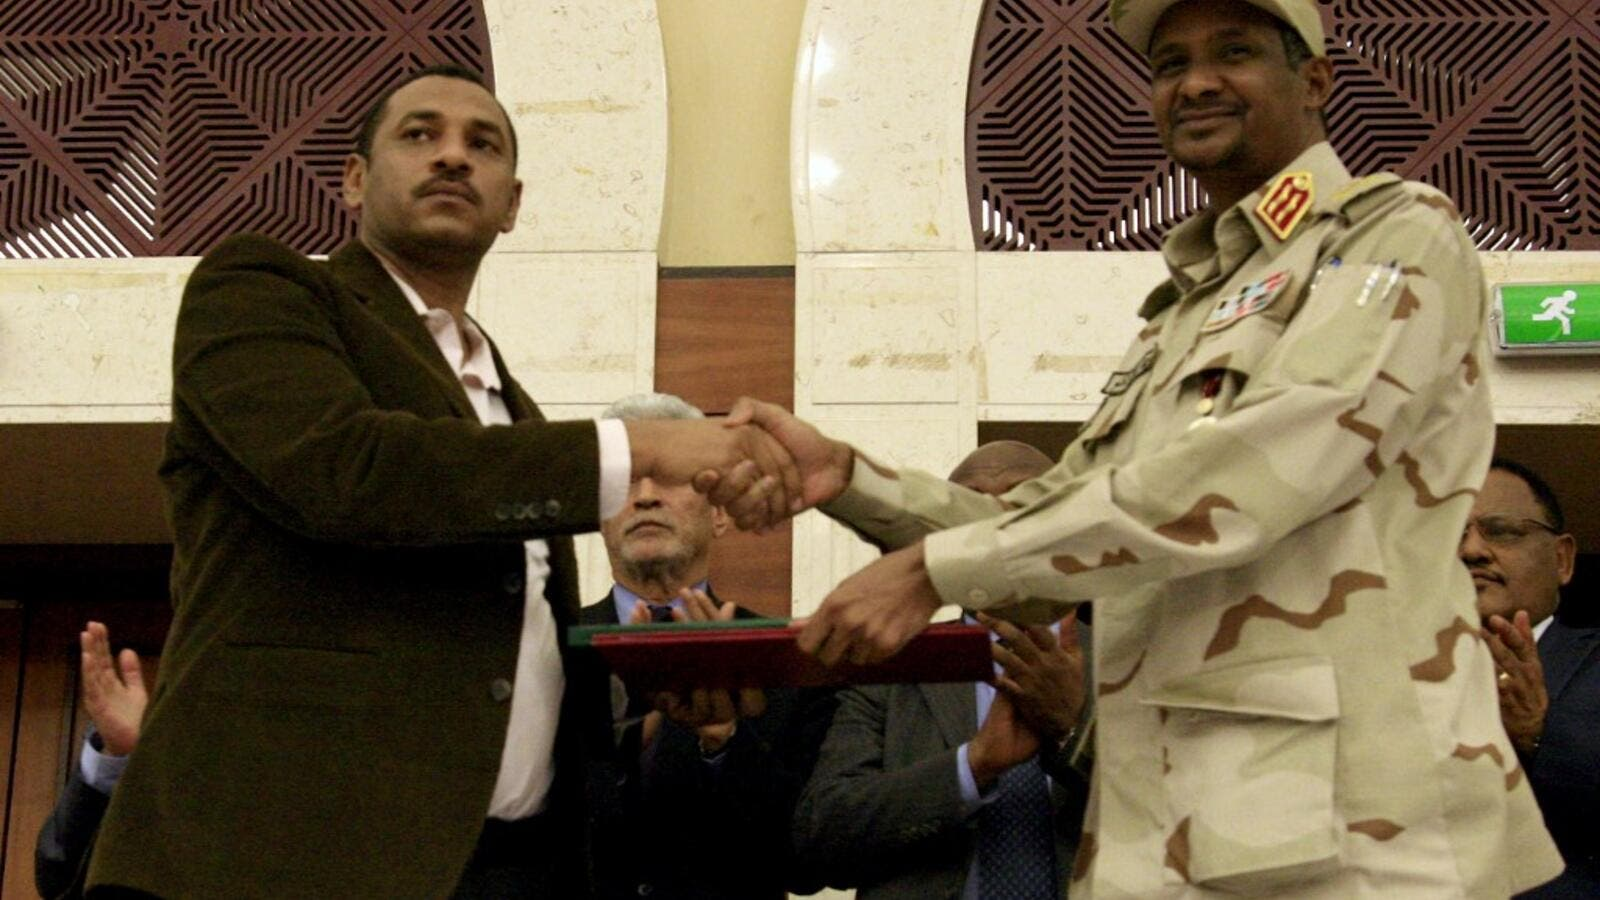 Sudanese deputy chief of the ruling miliary council Mohamed Hamdan Dagalo (R) and protest movement Alliance for Freedom and Changes leader Ahmad al-Rabiah shake hands after inking an agreement before African Union and Ethiopian mediators in Khartoum early on July 17, 2019. (AFP)